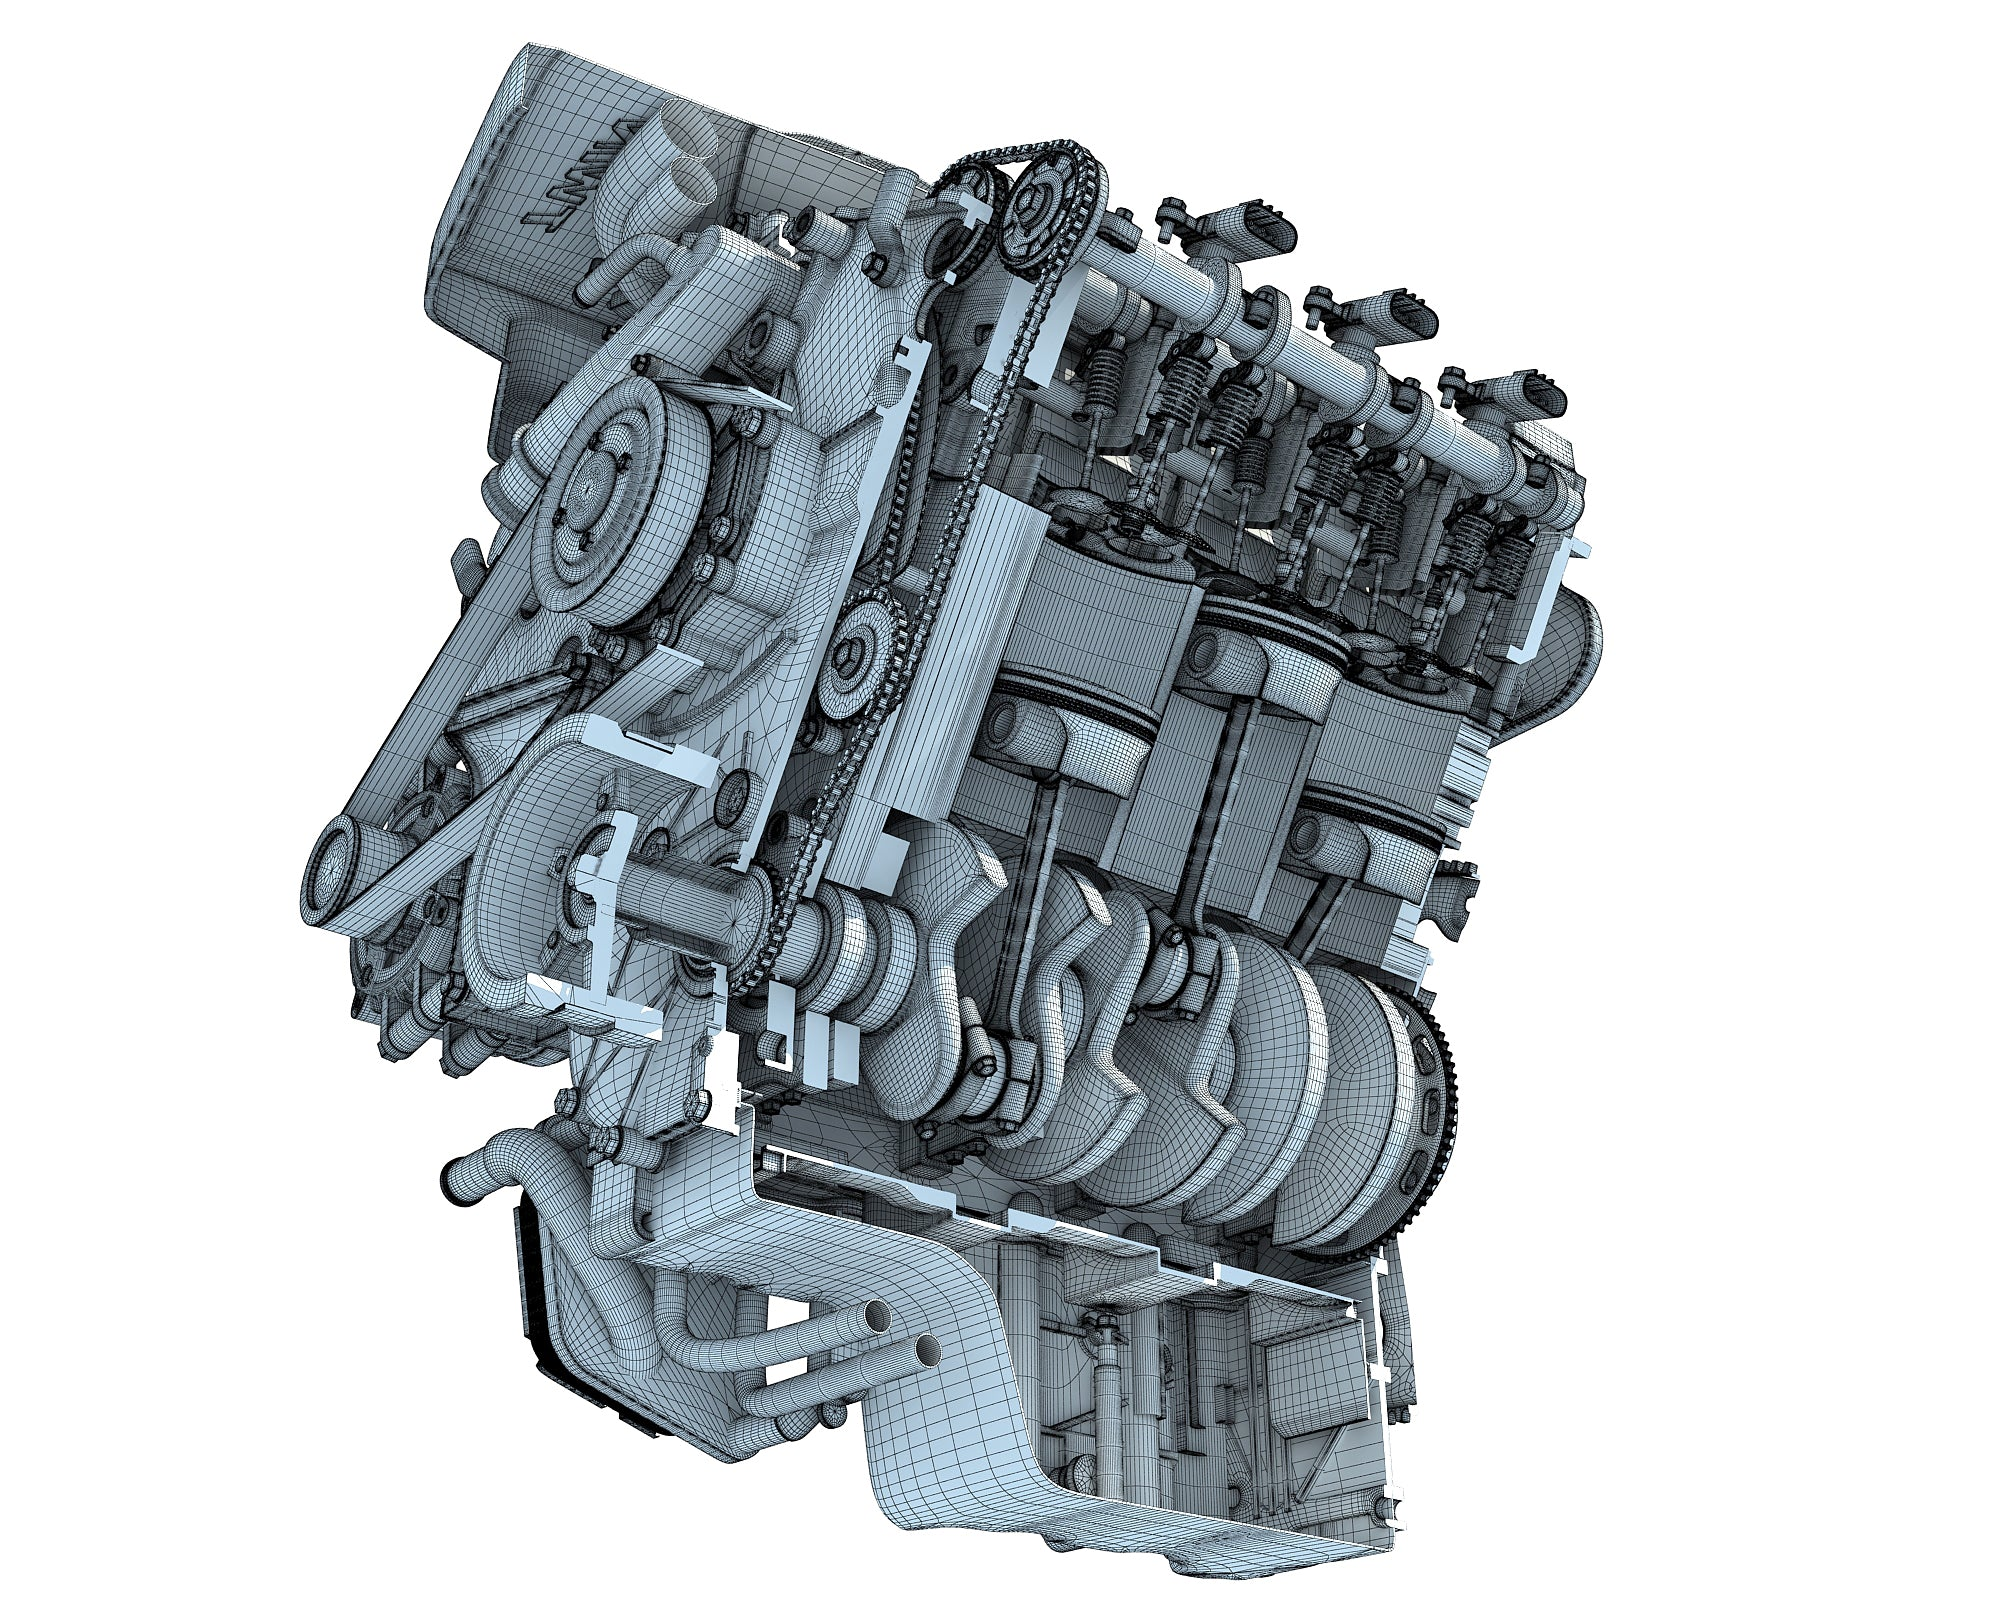 Sectioned Engine 3D Models